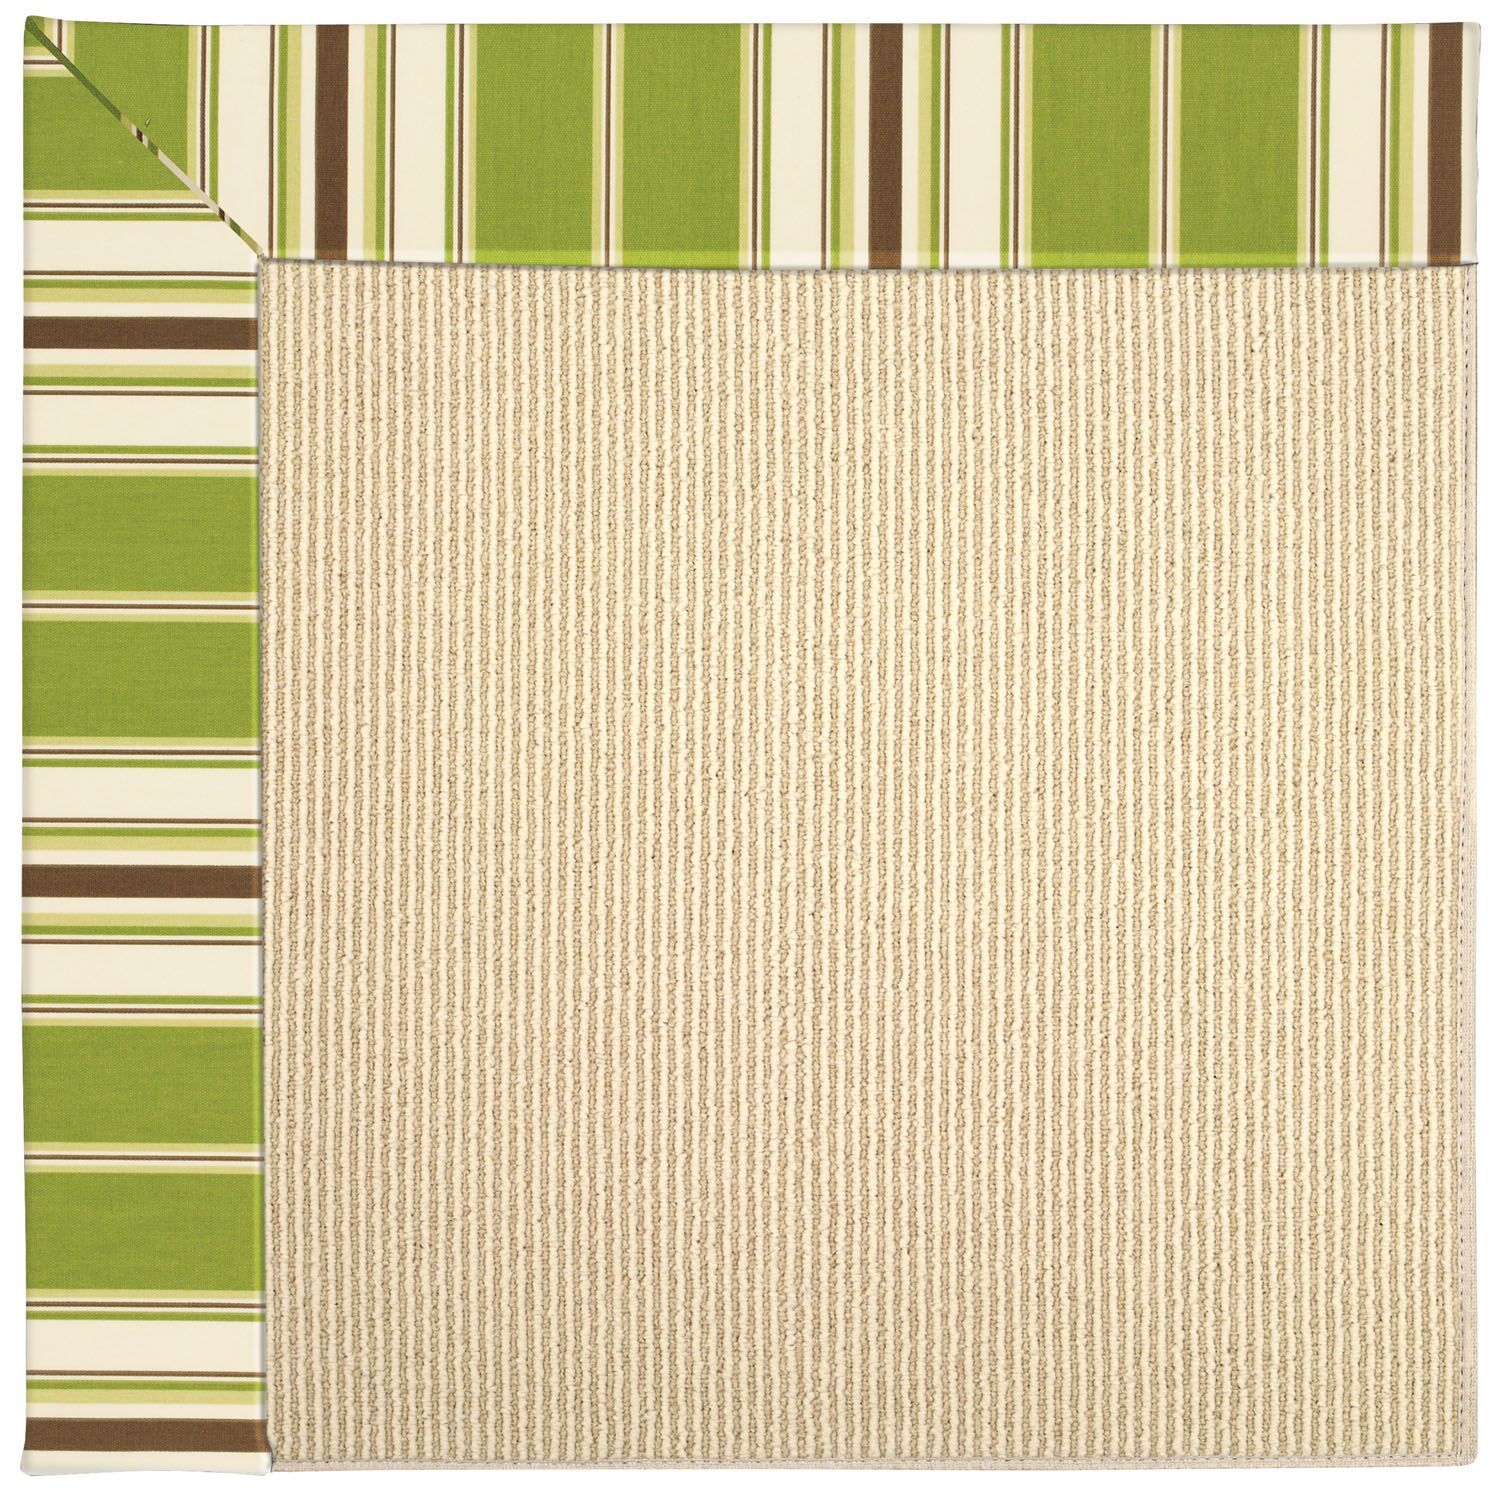 Lisle Machine Tufted Green/Brown Indoor/Outdoor Area Rug Rug Size: Rectangle 7' x 9'